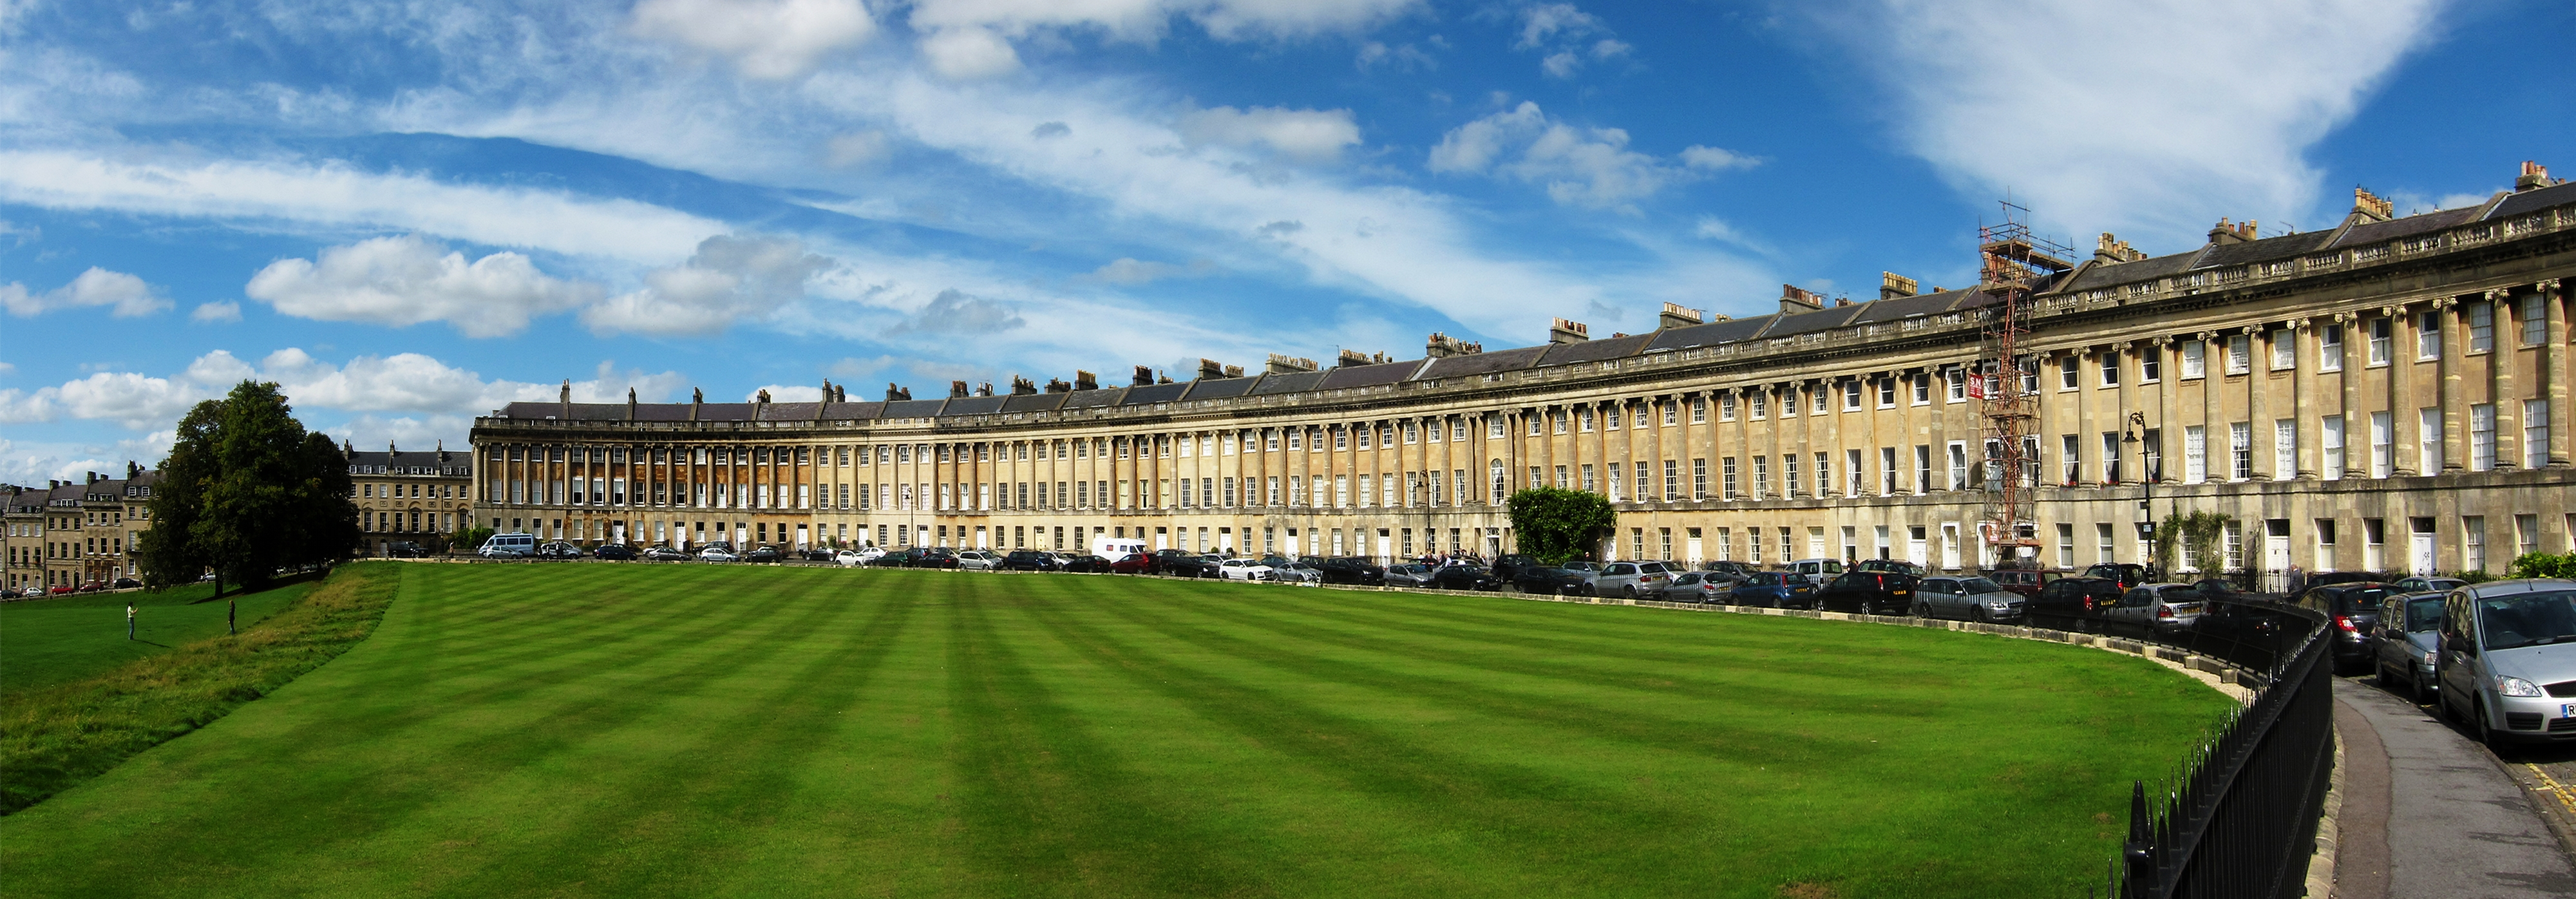 https://commons.wikimedia.org/wiki/File:Bath_royal_crescent.jpg